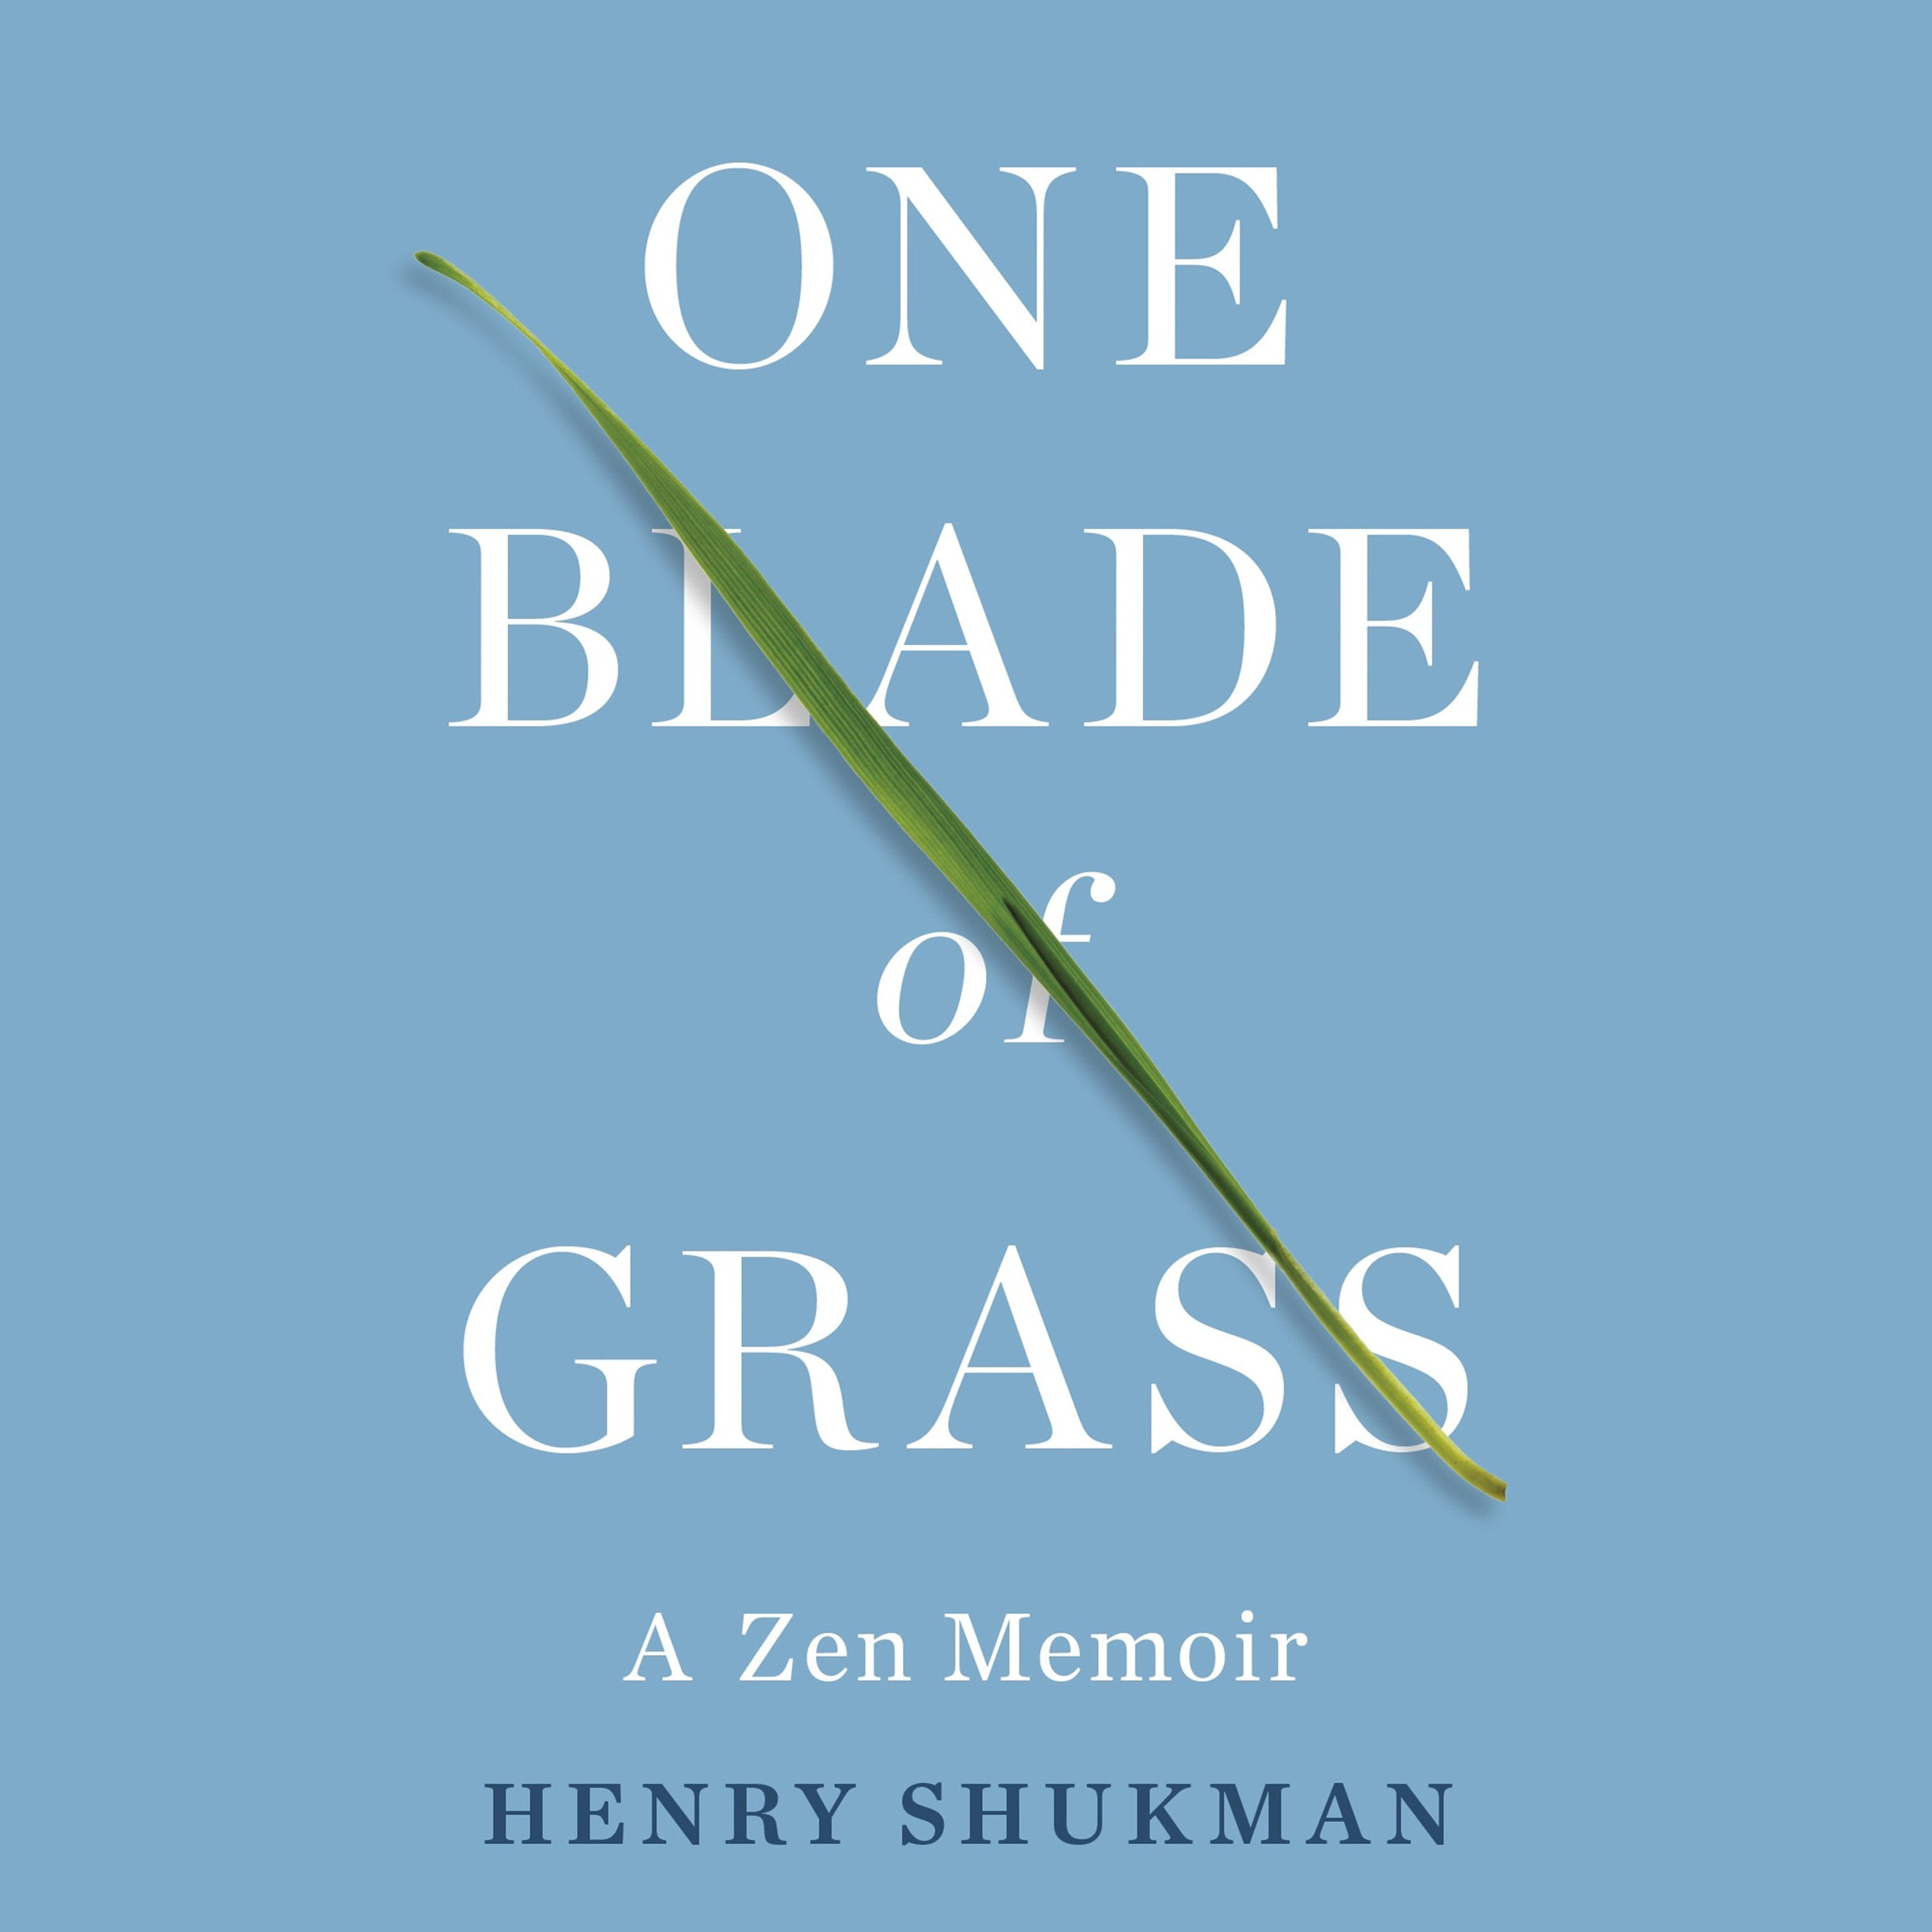 ONE BLADE OF GRASS by Henry Shukman, read by Henry Shukman - audiobook extract